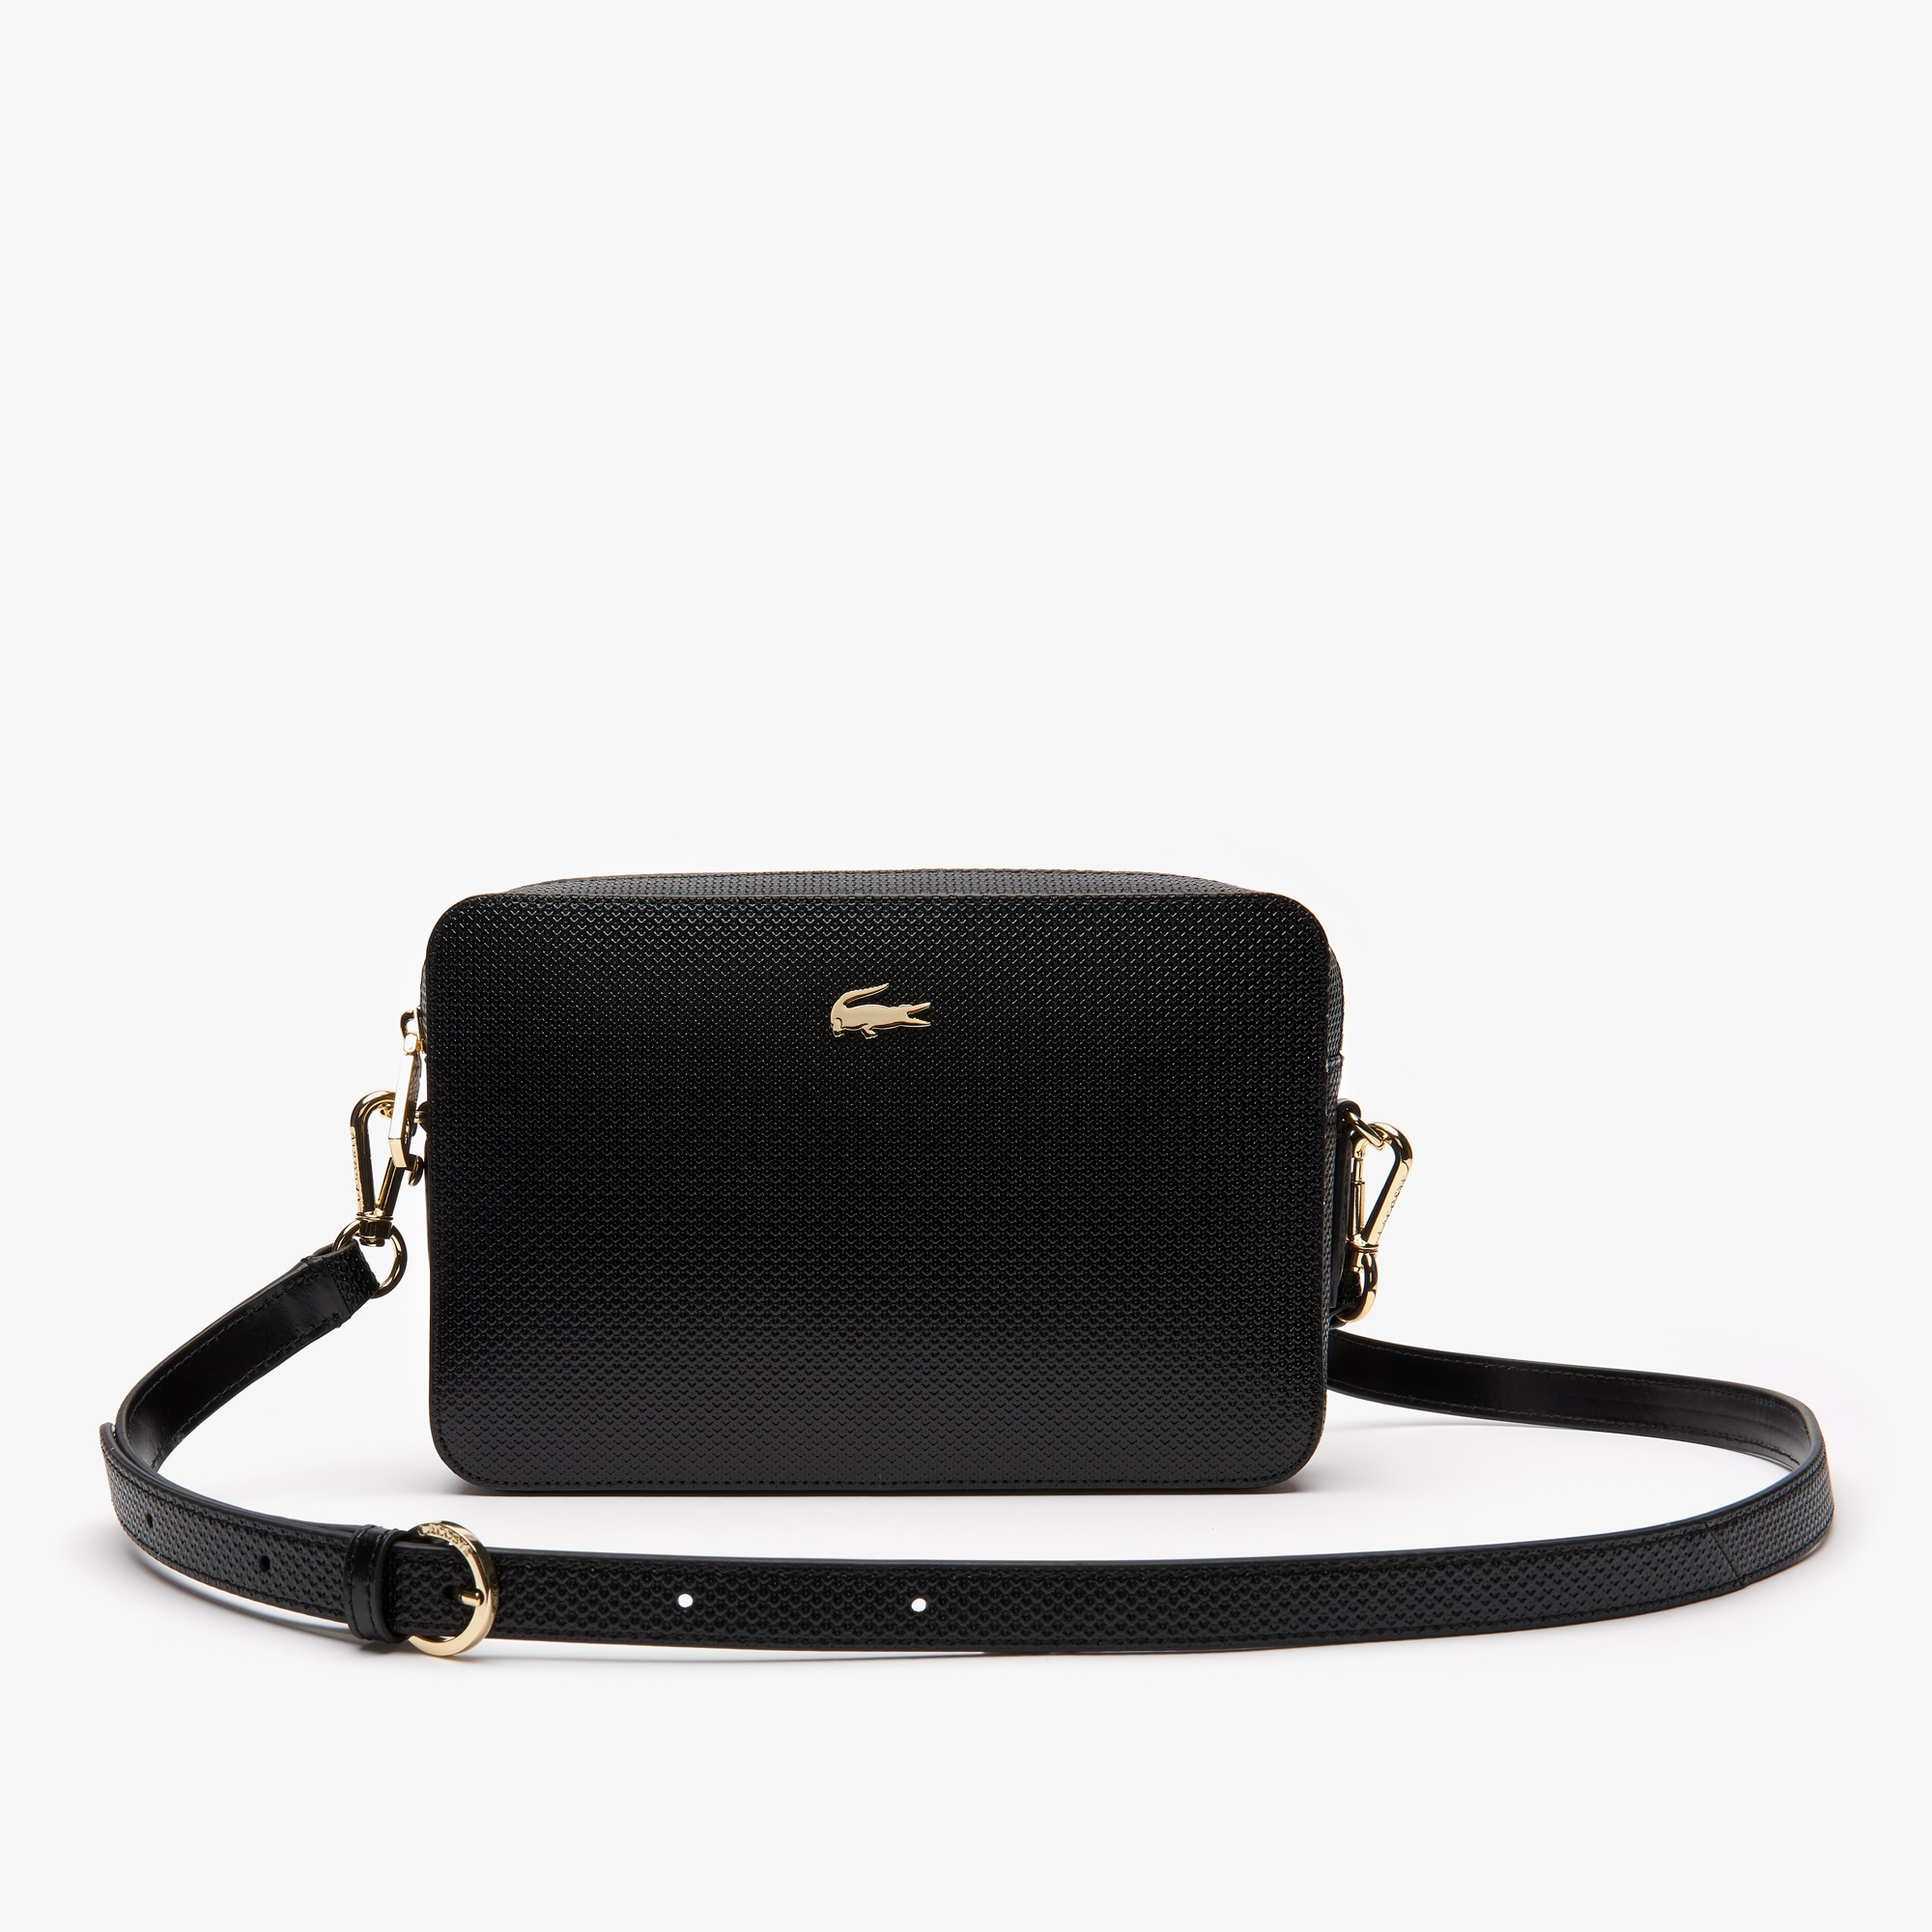 a461ab9b406 All Crossover Bags | Leather Goods | LACOSTE